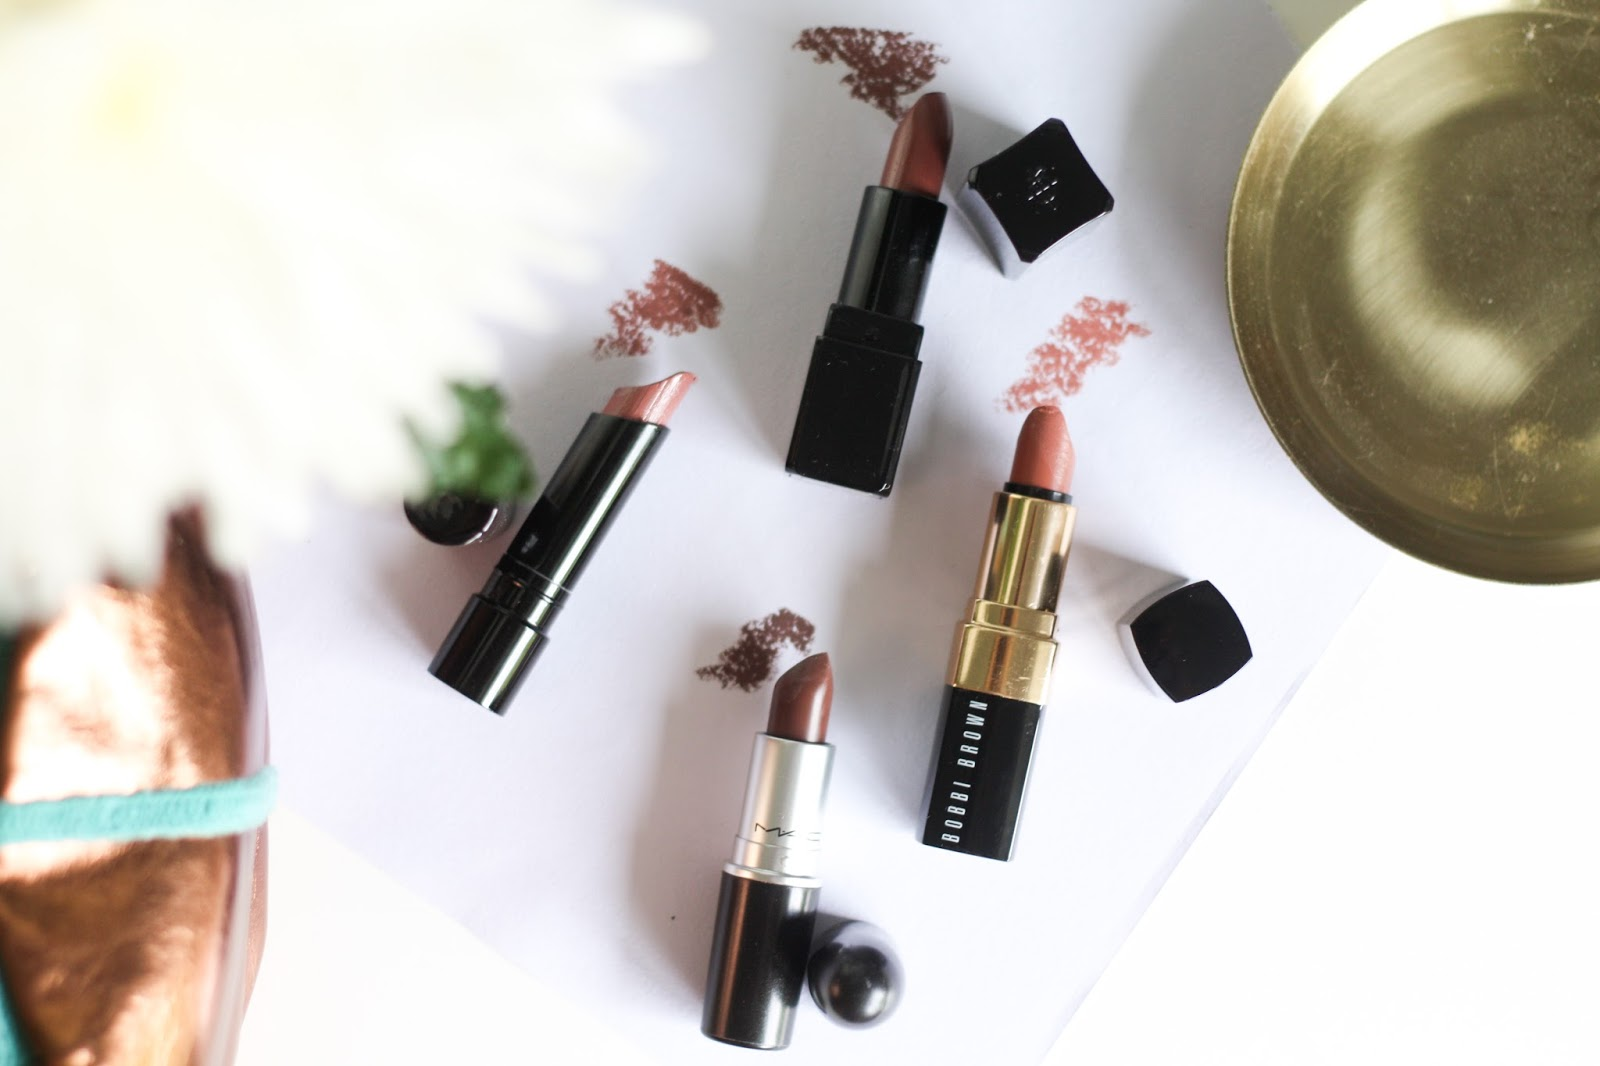 Top brown lipsticks review